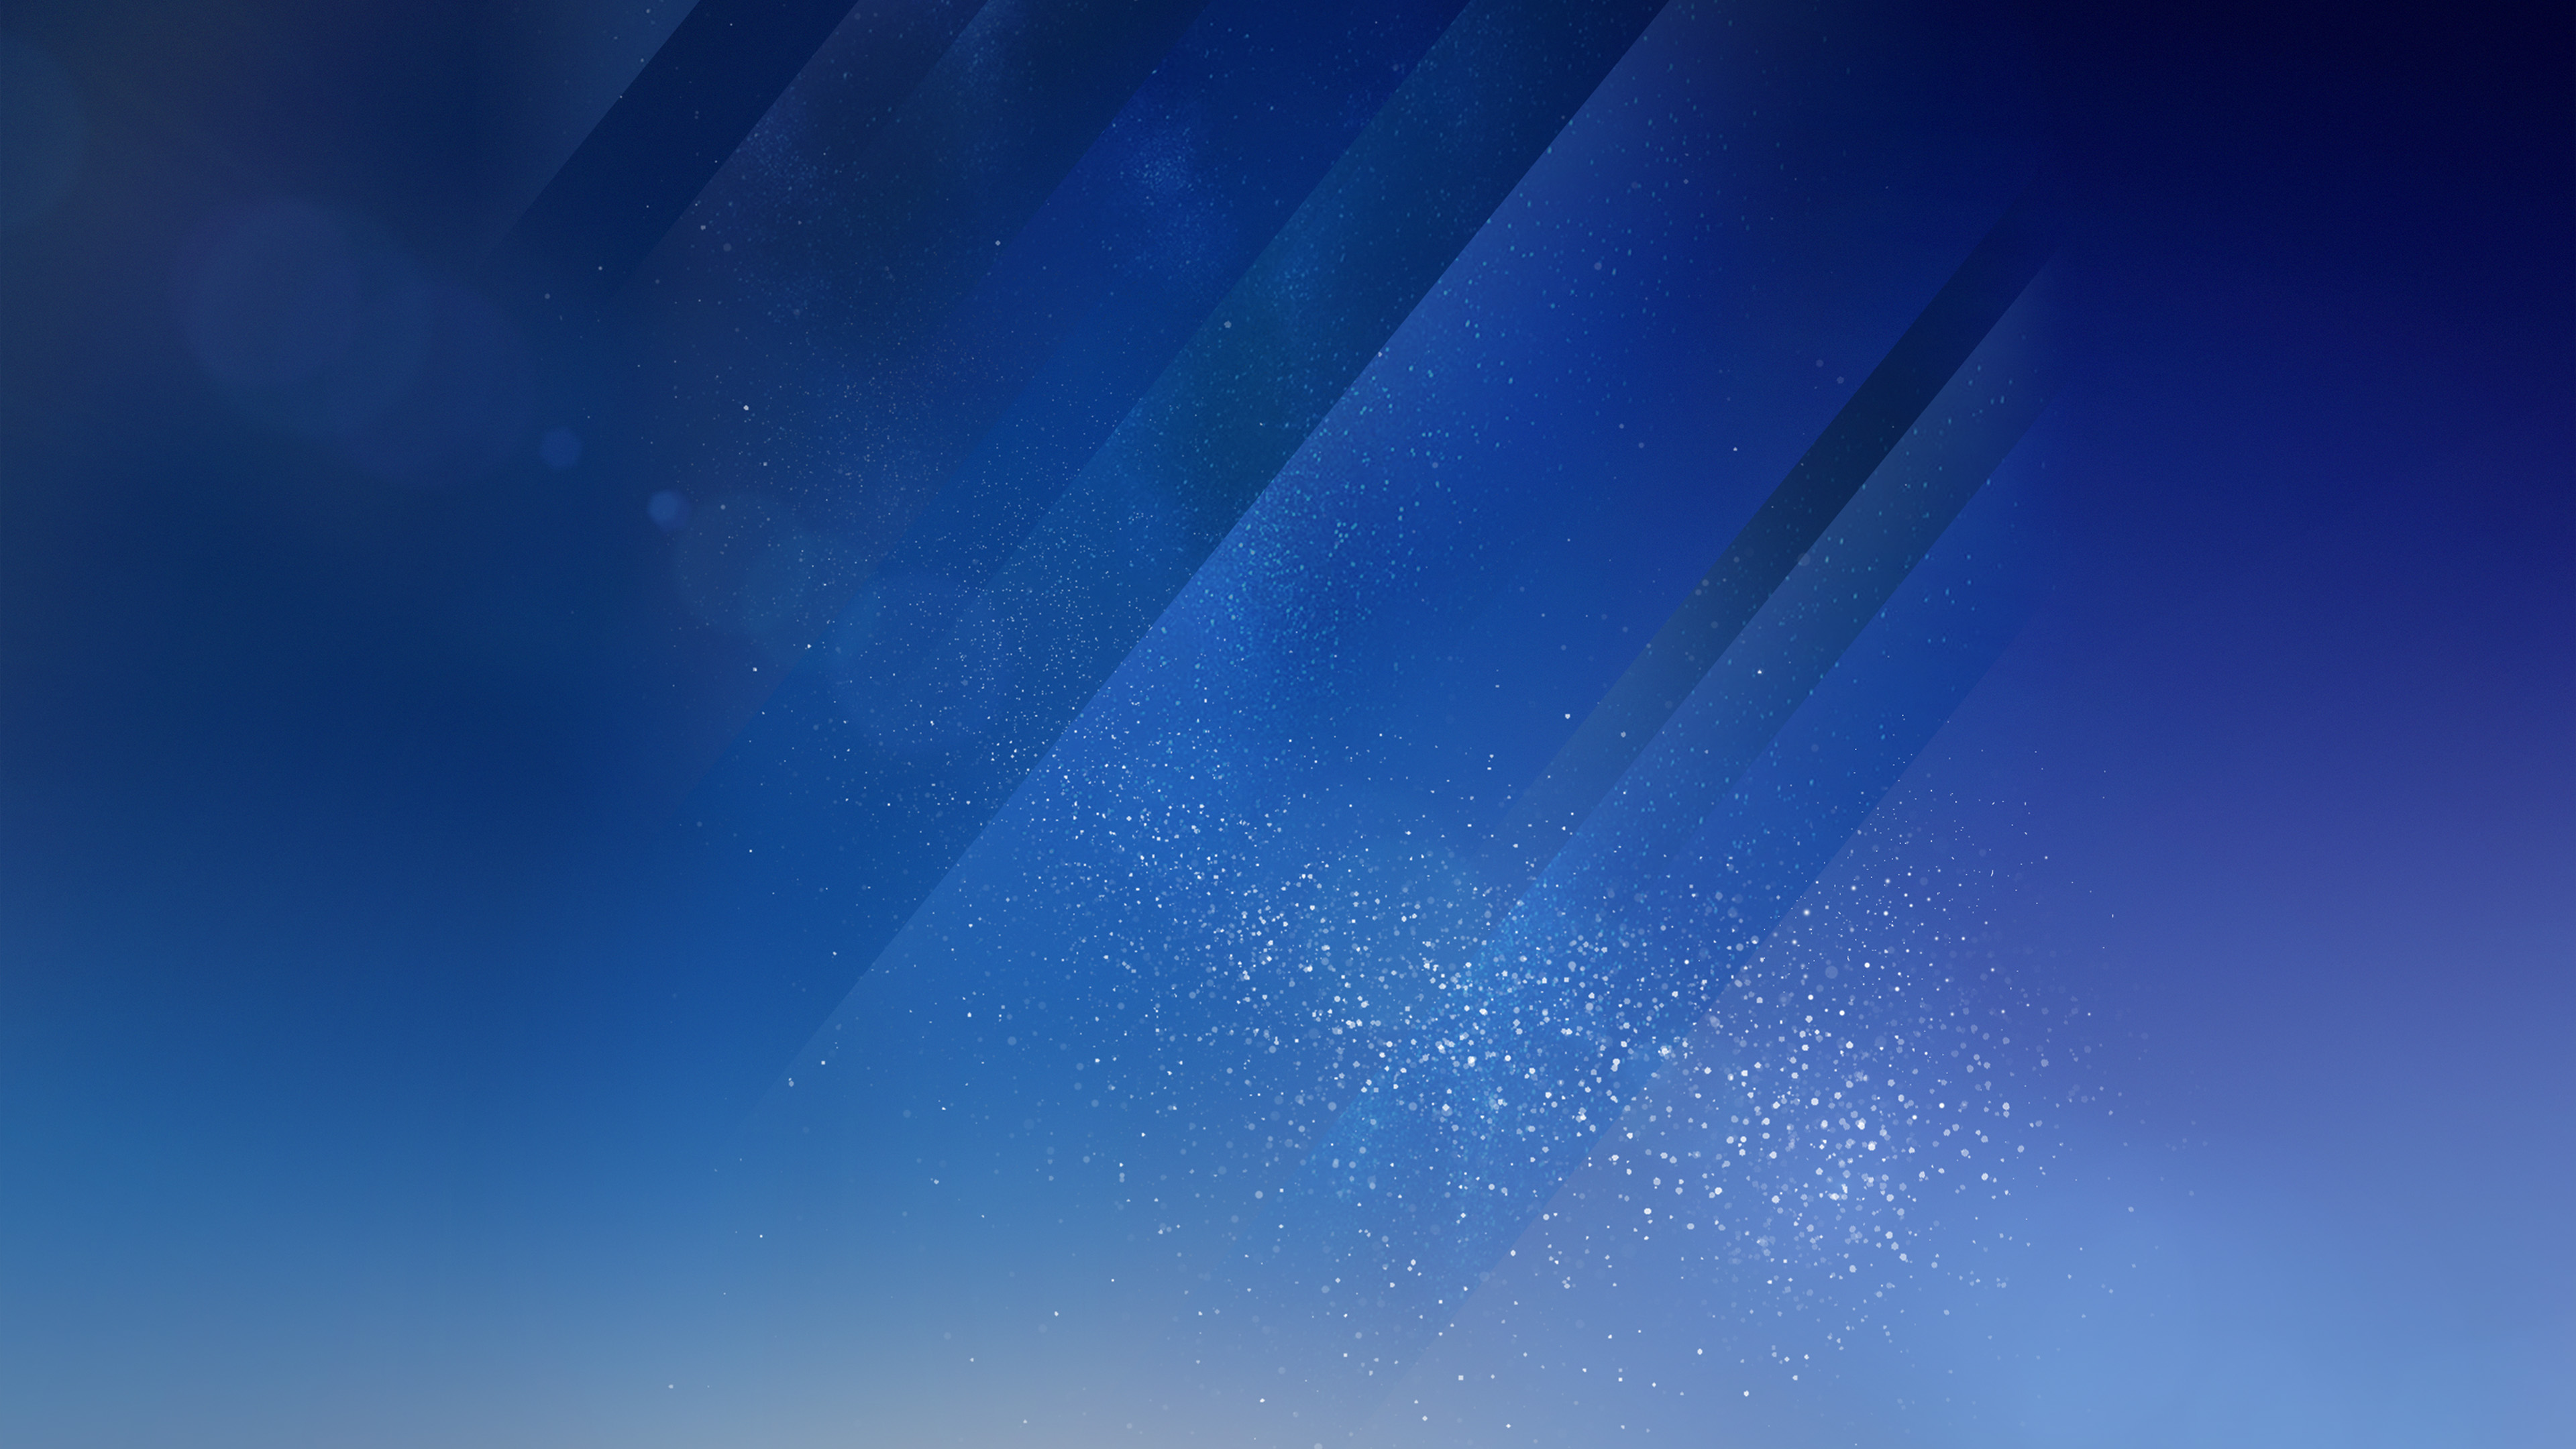 Wallpaper For Desktop Laptop Wa76 Galaxy S8 Blue Pattern Background Samsung